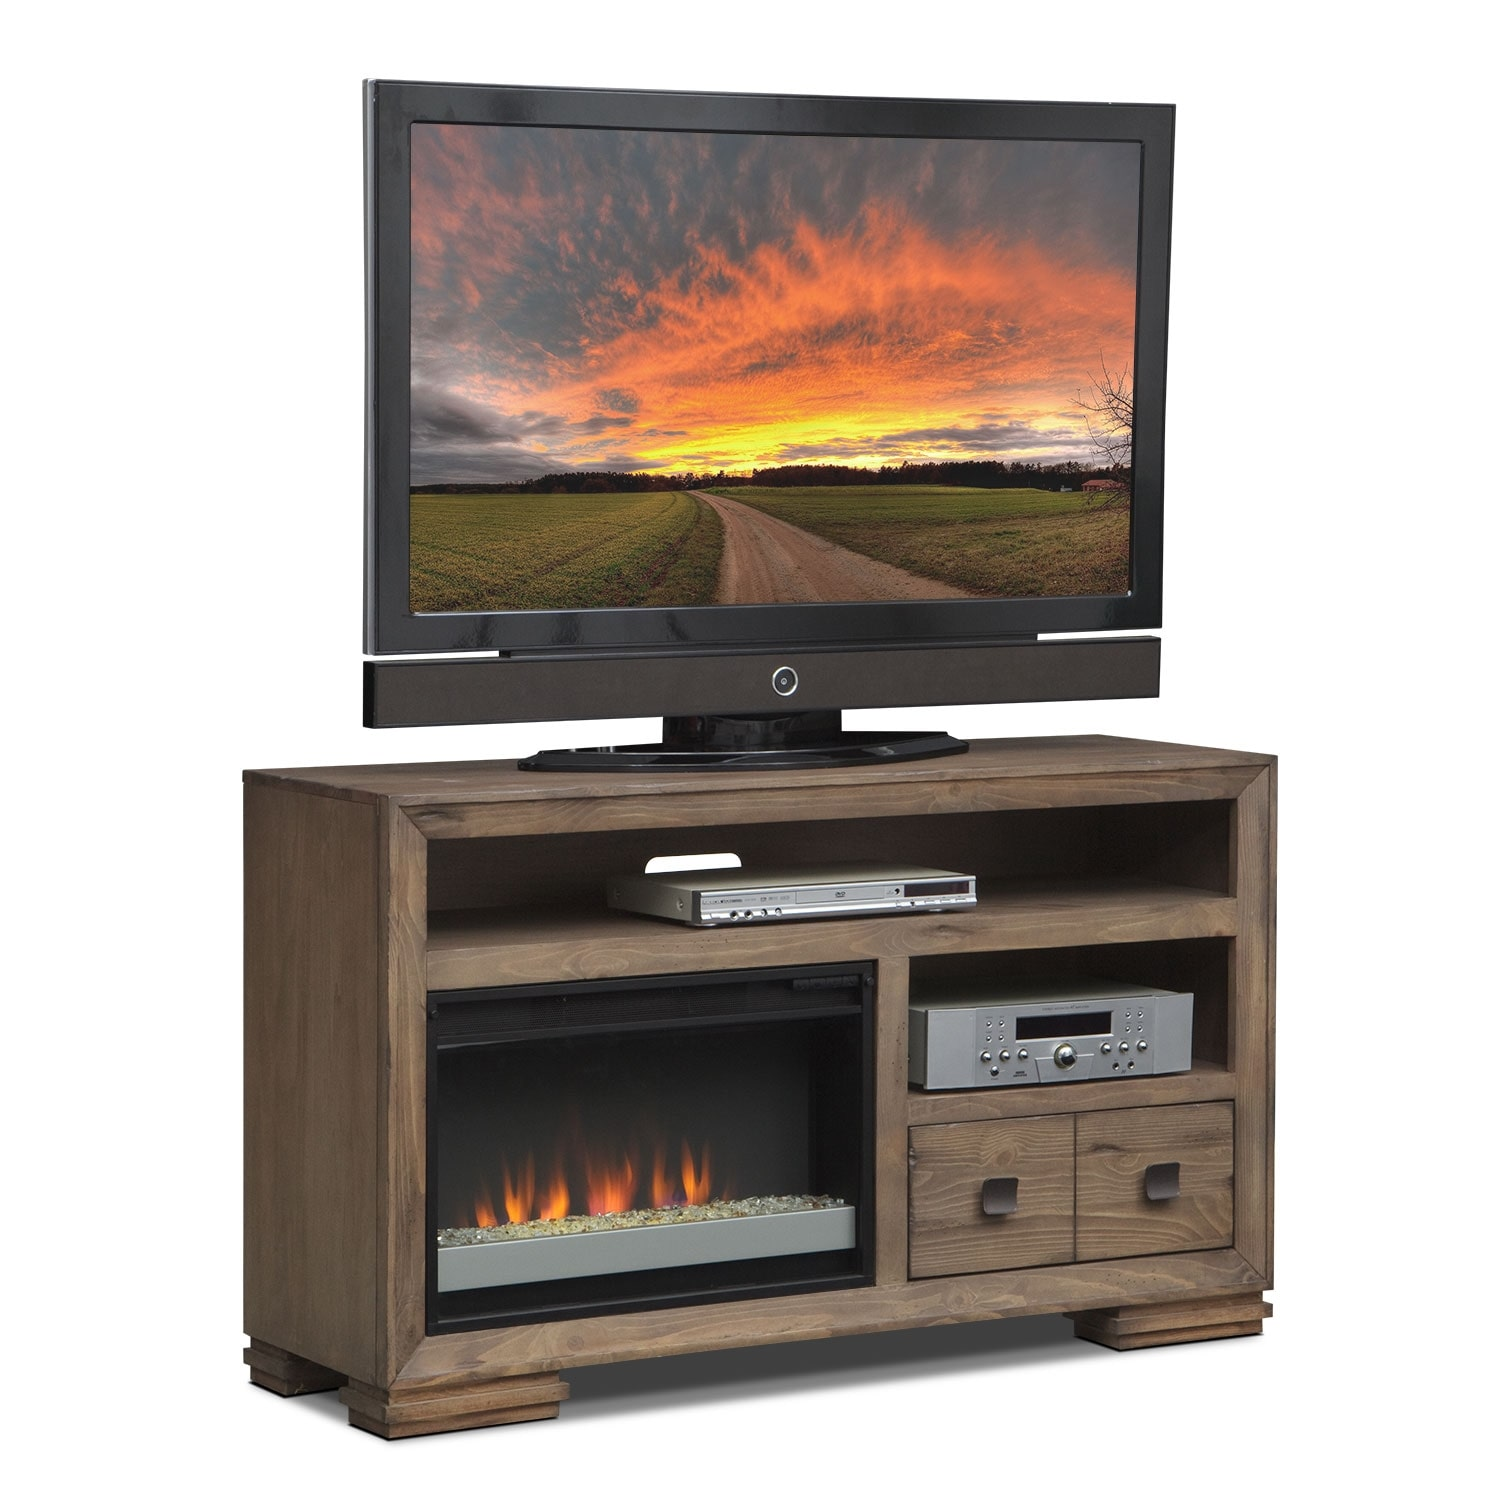 Mesa 54 Fireplace Tv Stand With Contemporary Insert Distressed Pine Value City Furniture